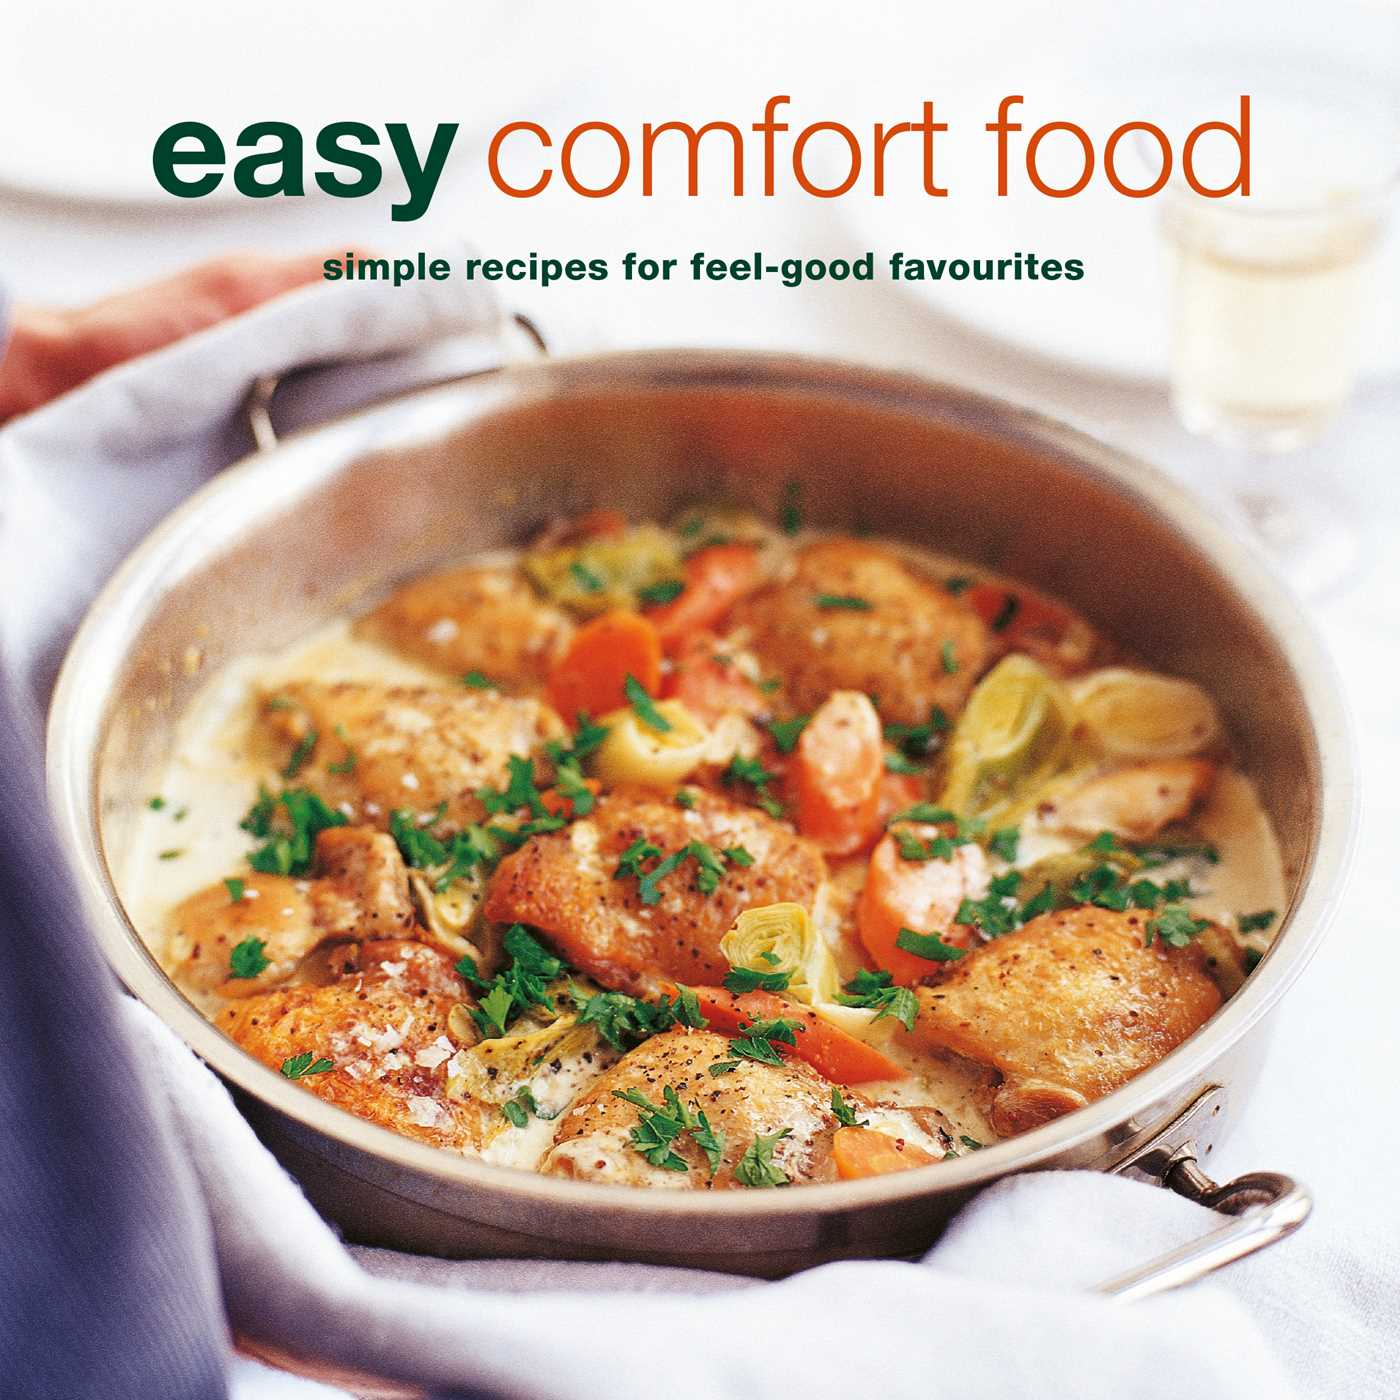 Easy comfort food book by to be announced official publisher book cover image jpg easy comfort food forumfinder Images